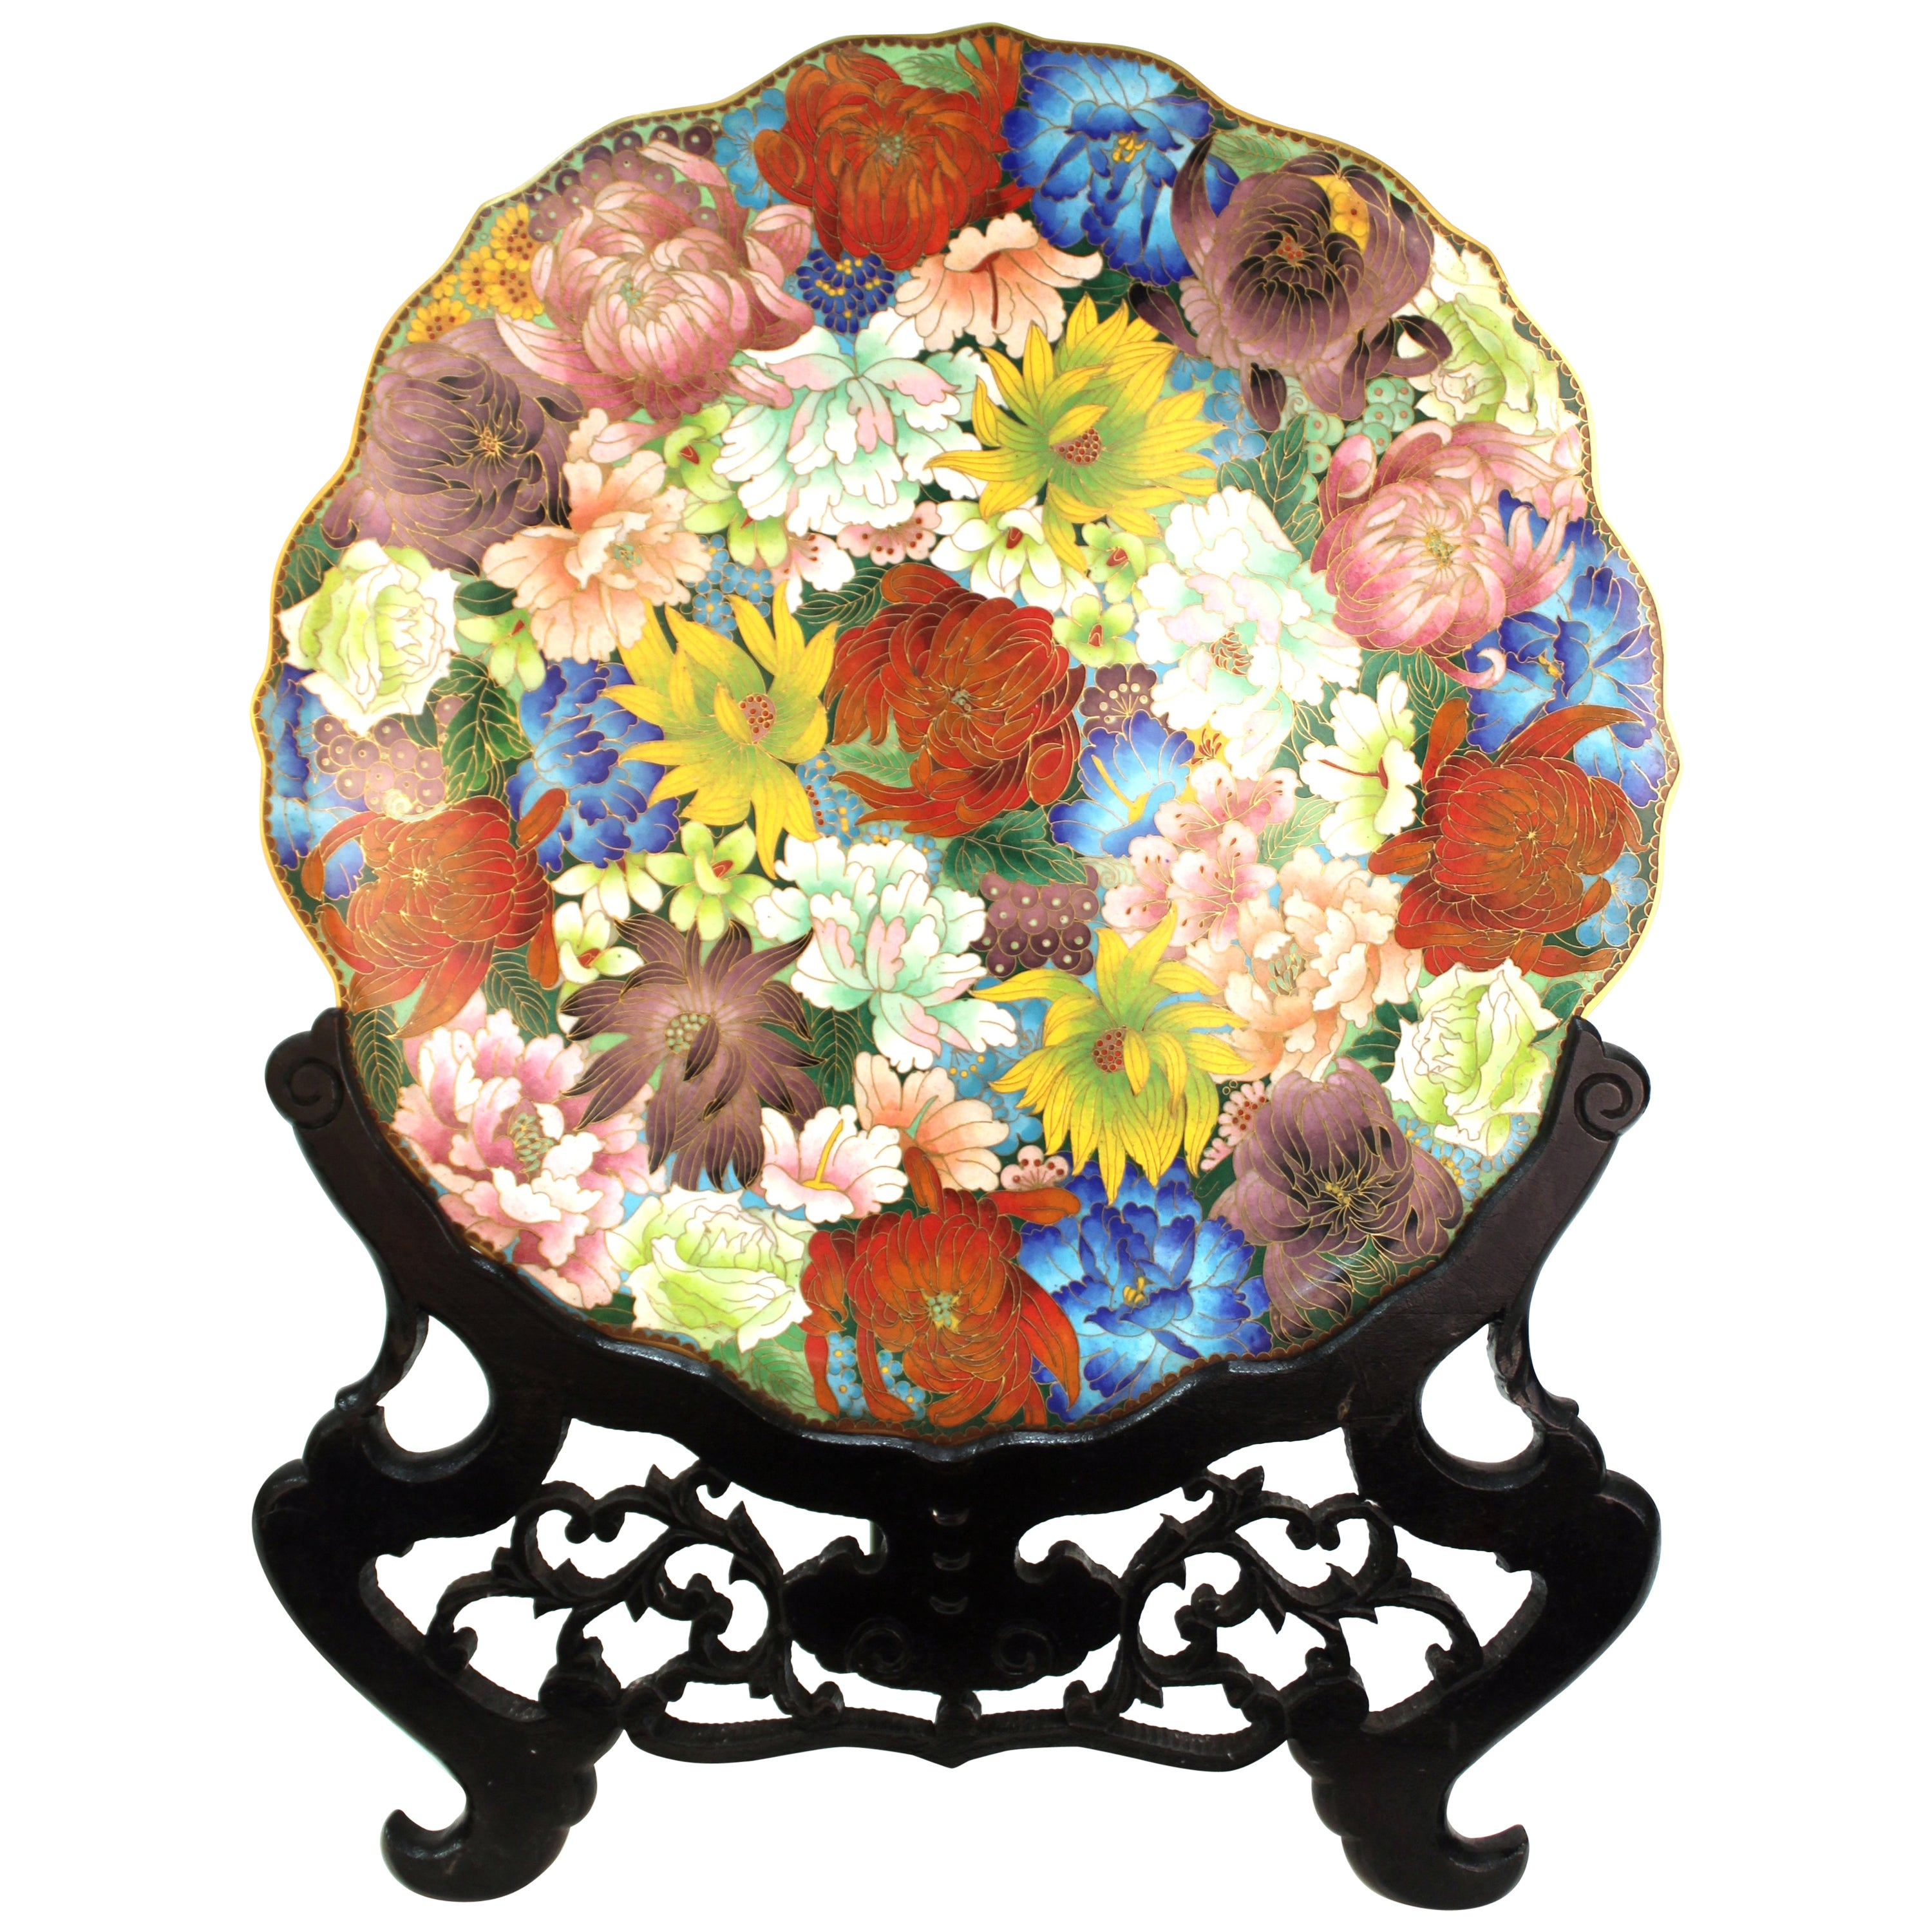 Chinese Enamel Cloisonné Charger with Multicolored Floral Motif